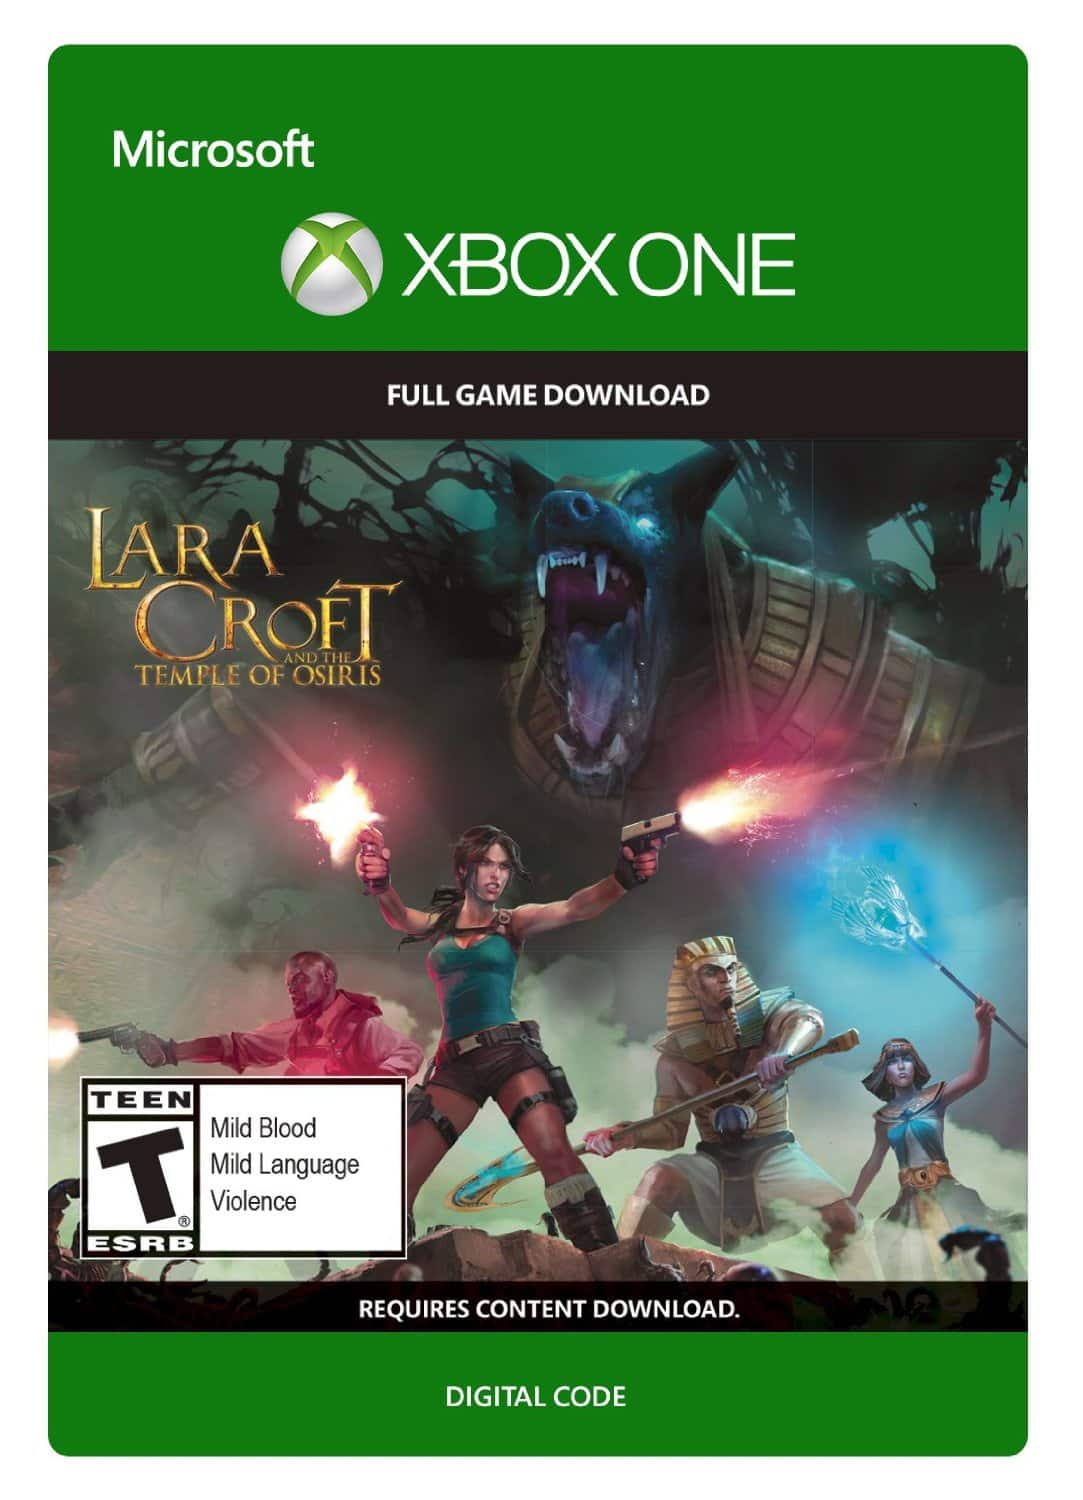 Xbox One Digital Game Download: Lara Croft and the Temple of Osiris $5.00 from Amazon